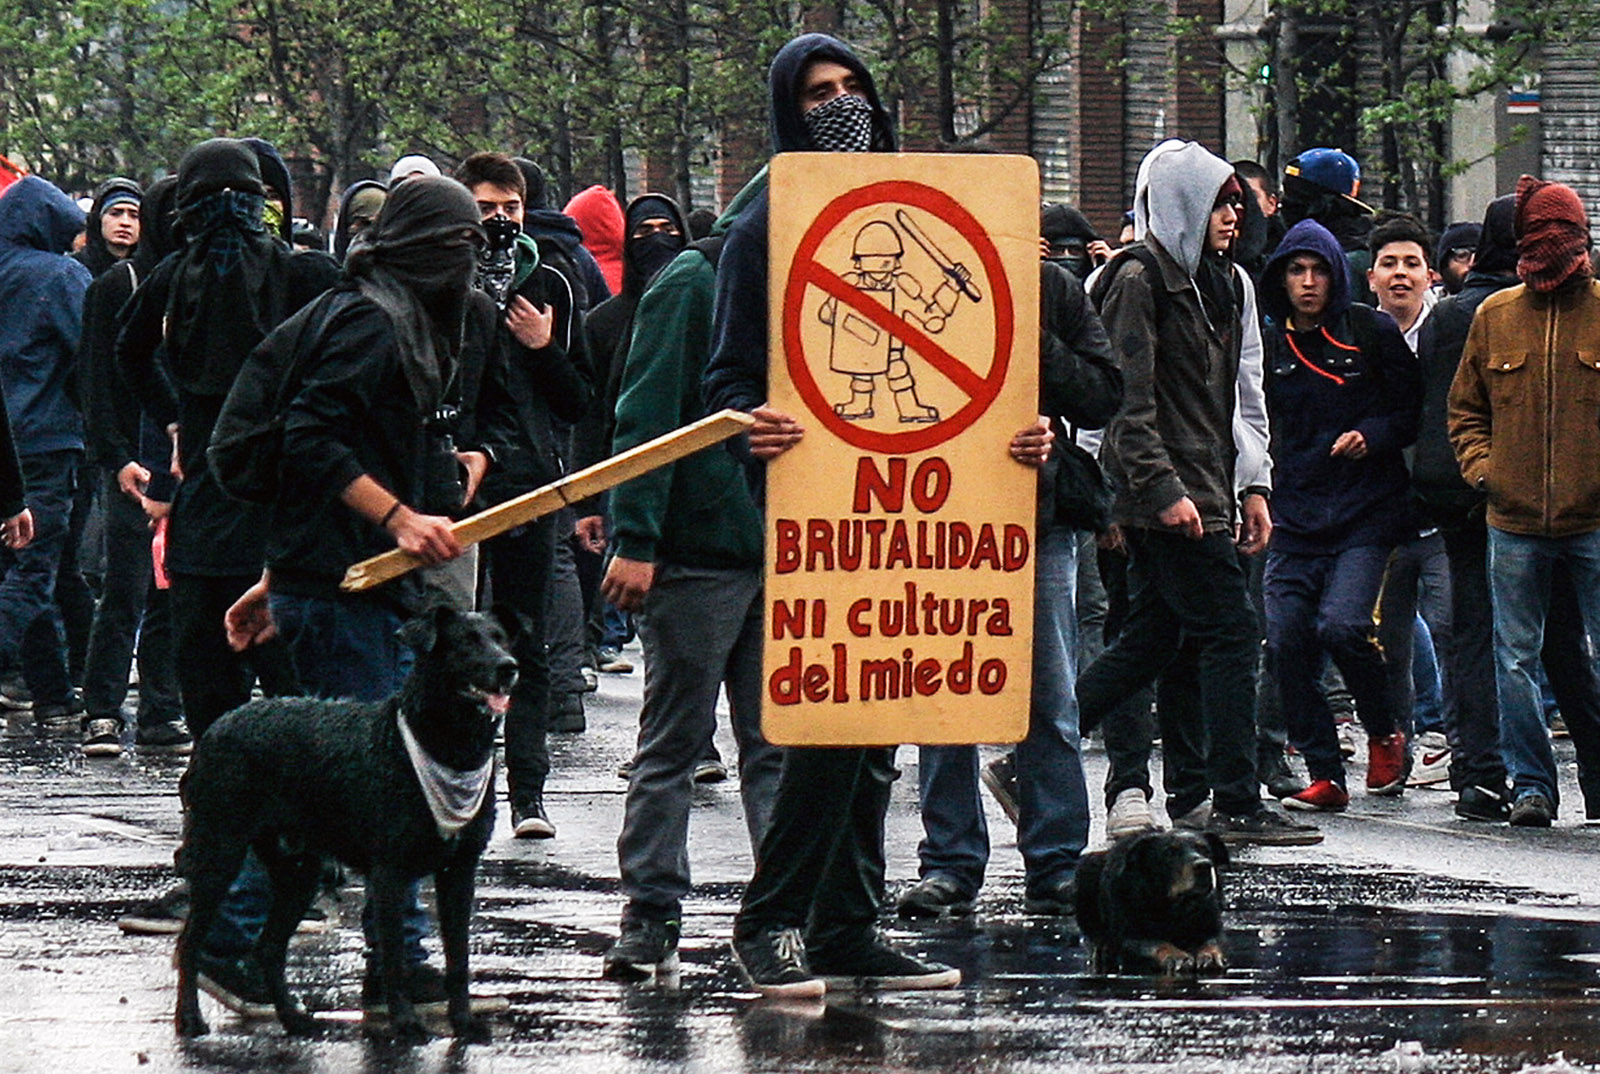 Student protesters with dogs, Chile, 2012